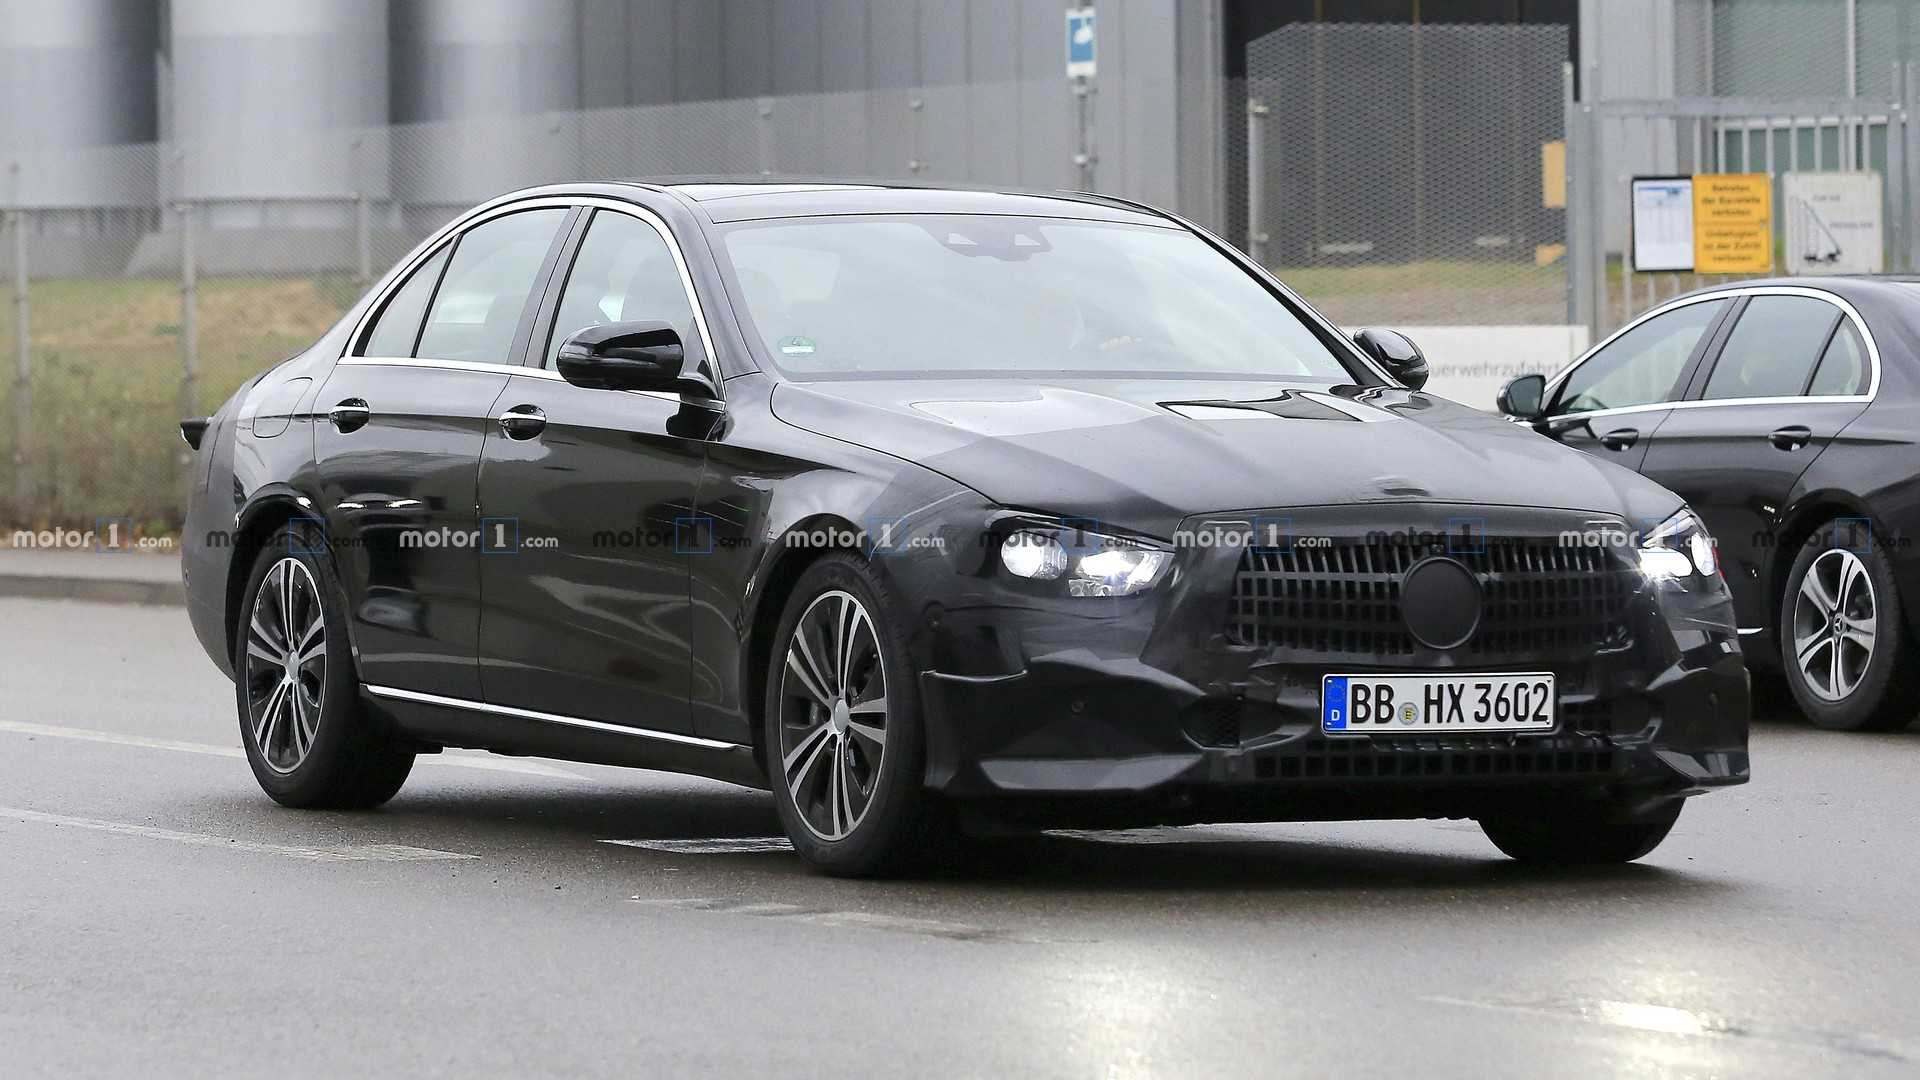 33 Gallery of Spy Shots 2020 Mercedes E Class Pricing by Spy Shots 2020 Mercedes E Class